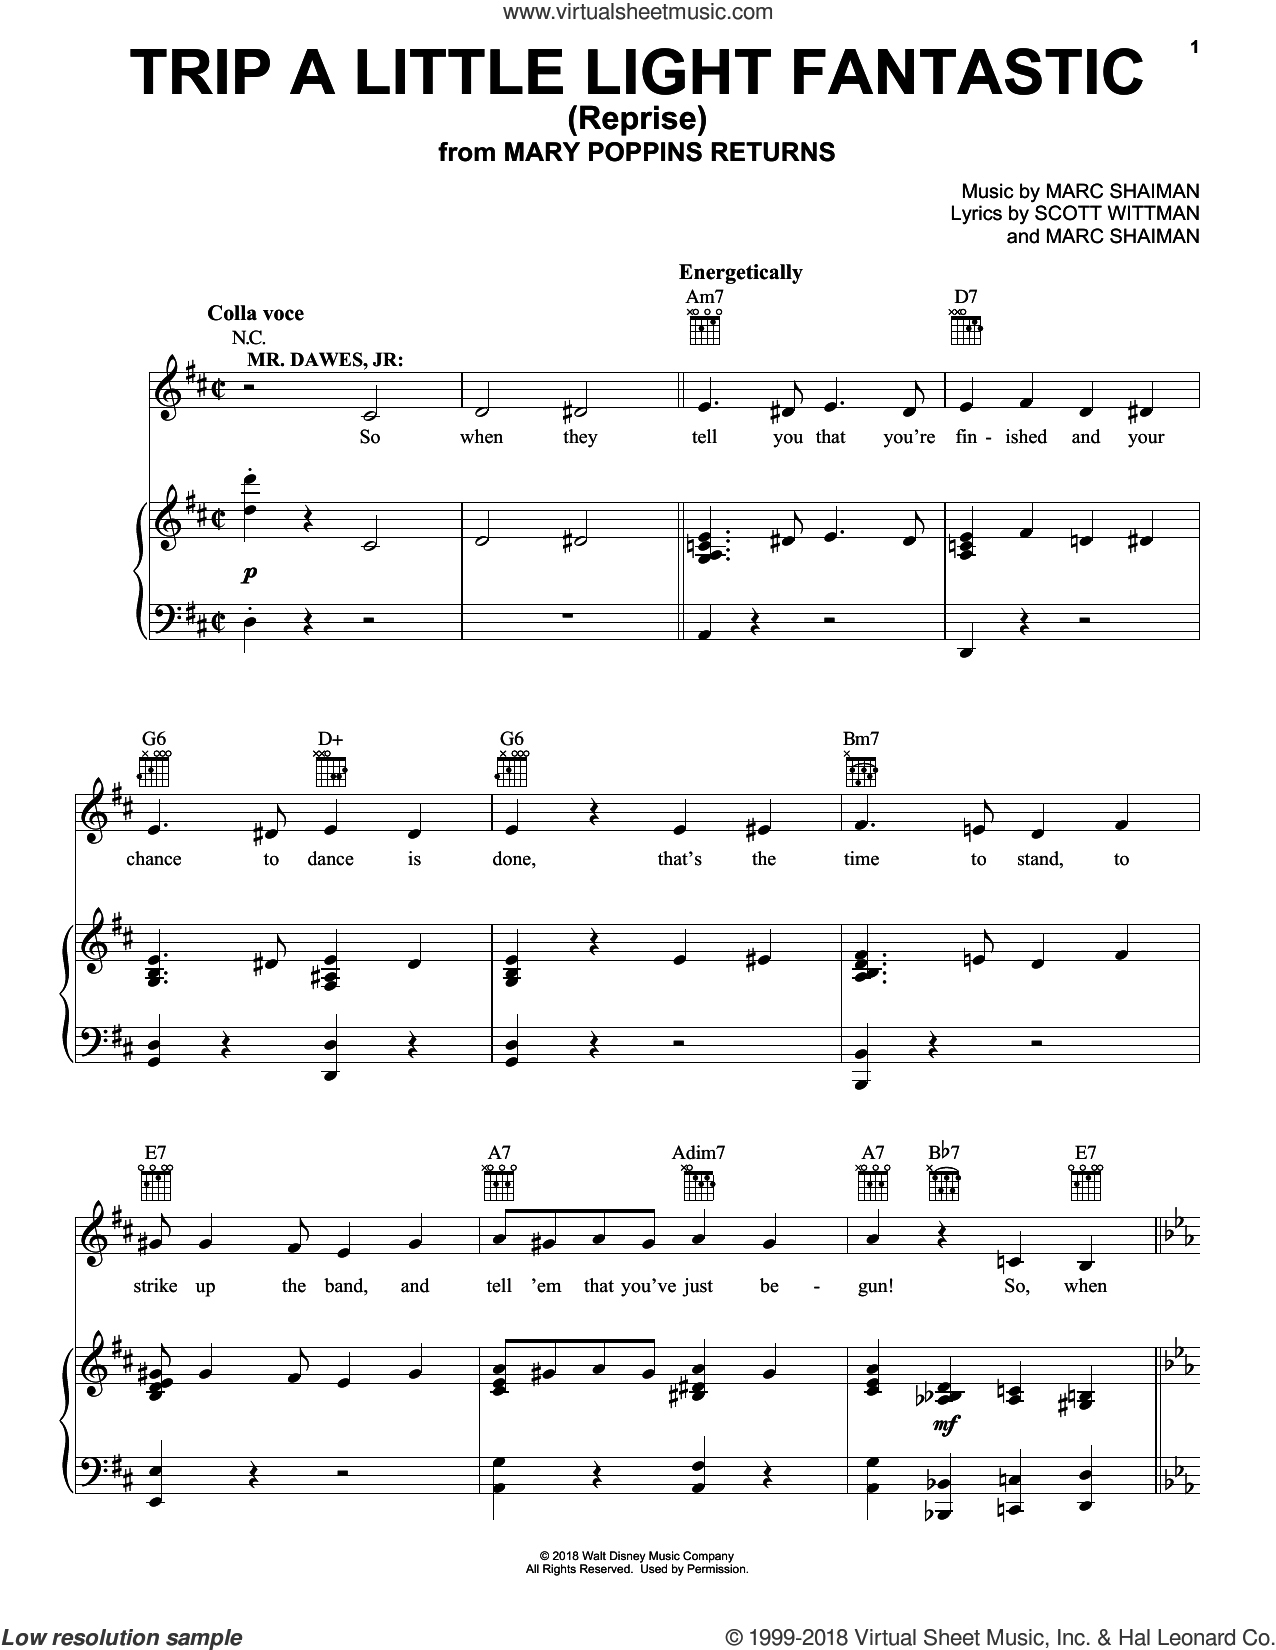 Trip A Little Light Fantastic (Reprise) (from Mary Poppins Returns) sheet music for voice, piano or guitar by Dick Van Dyke & Company, Marc Shaiman and Scott Wittman, intermediate skill level